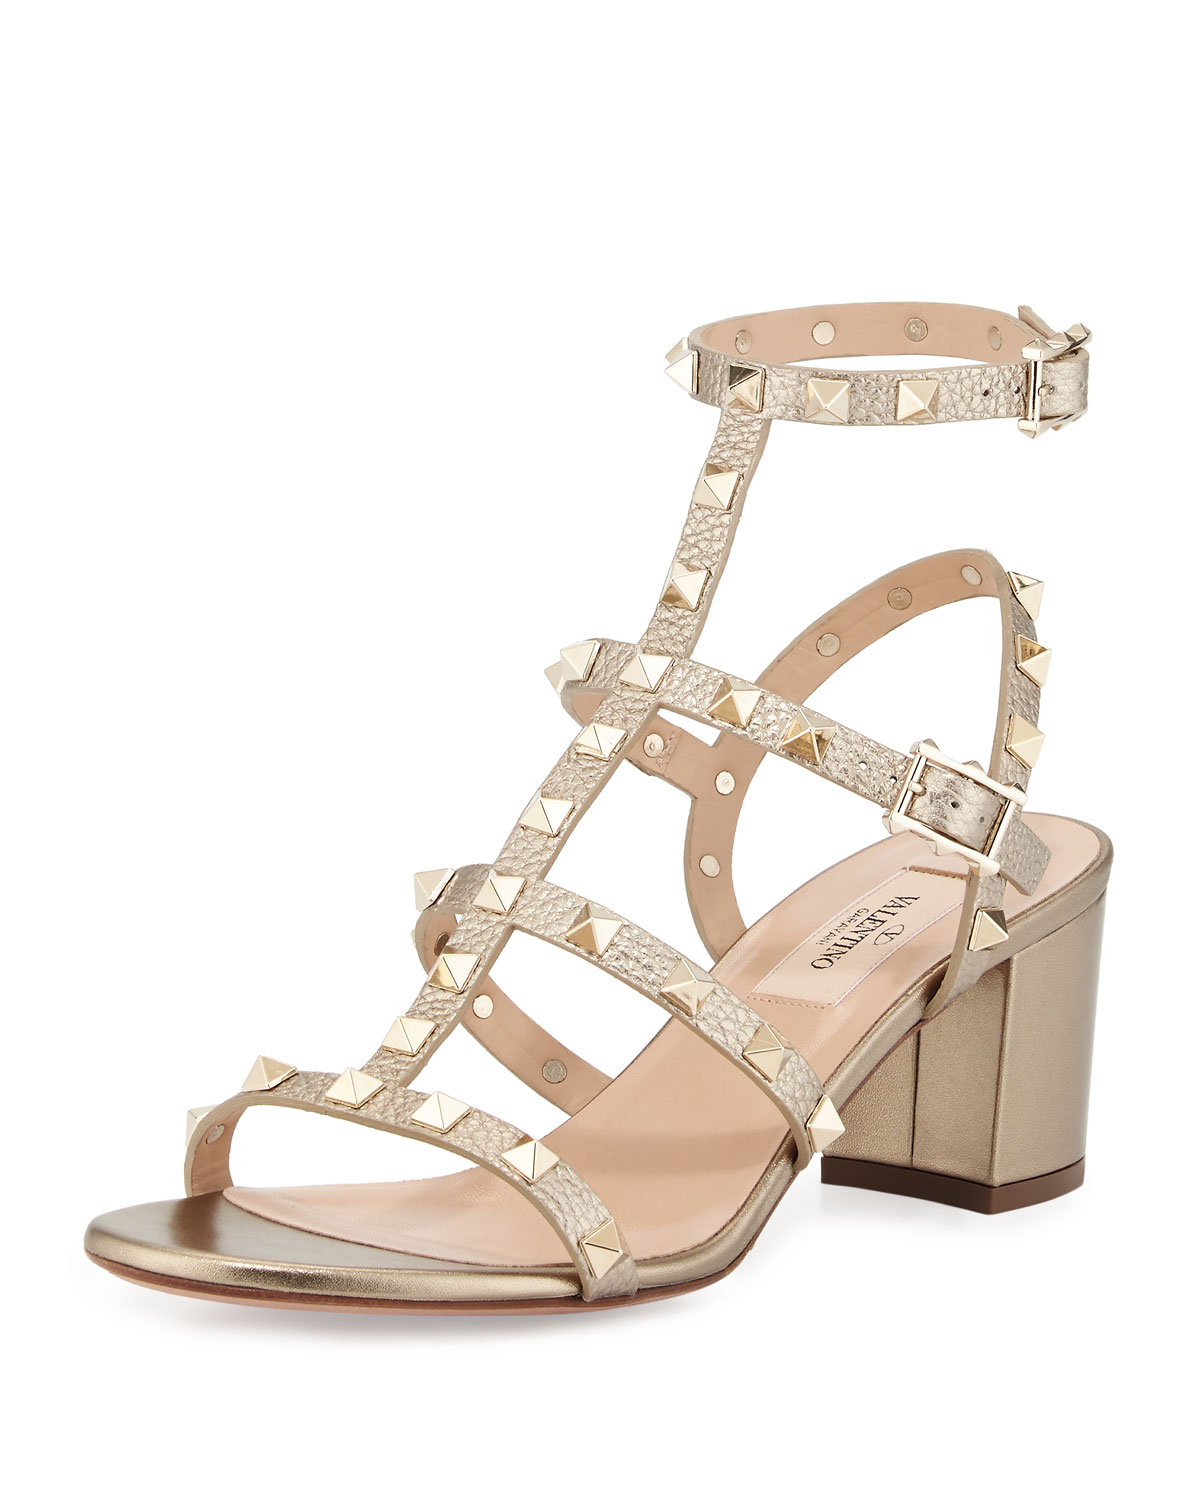 Red Valentino Rockstud Leather City Sandal, Alba, Women's, Size: 35.5B/5.5B